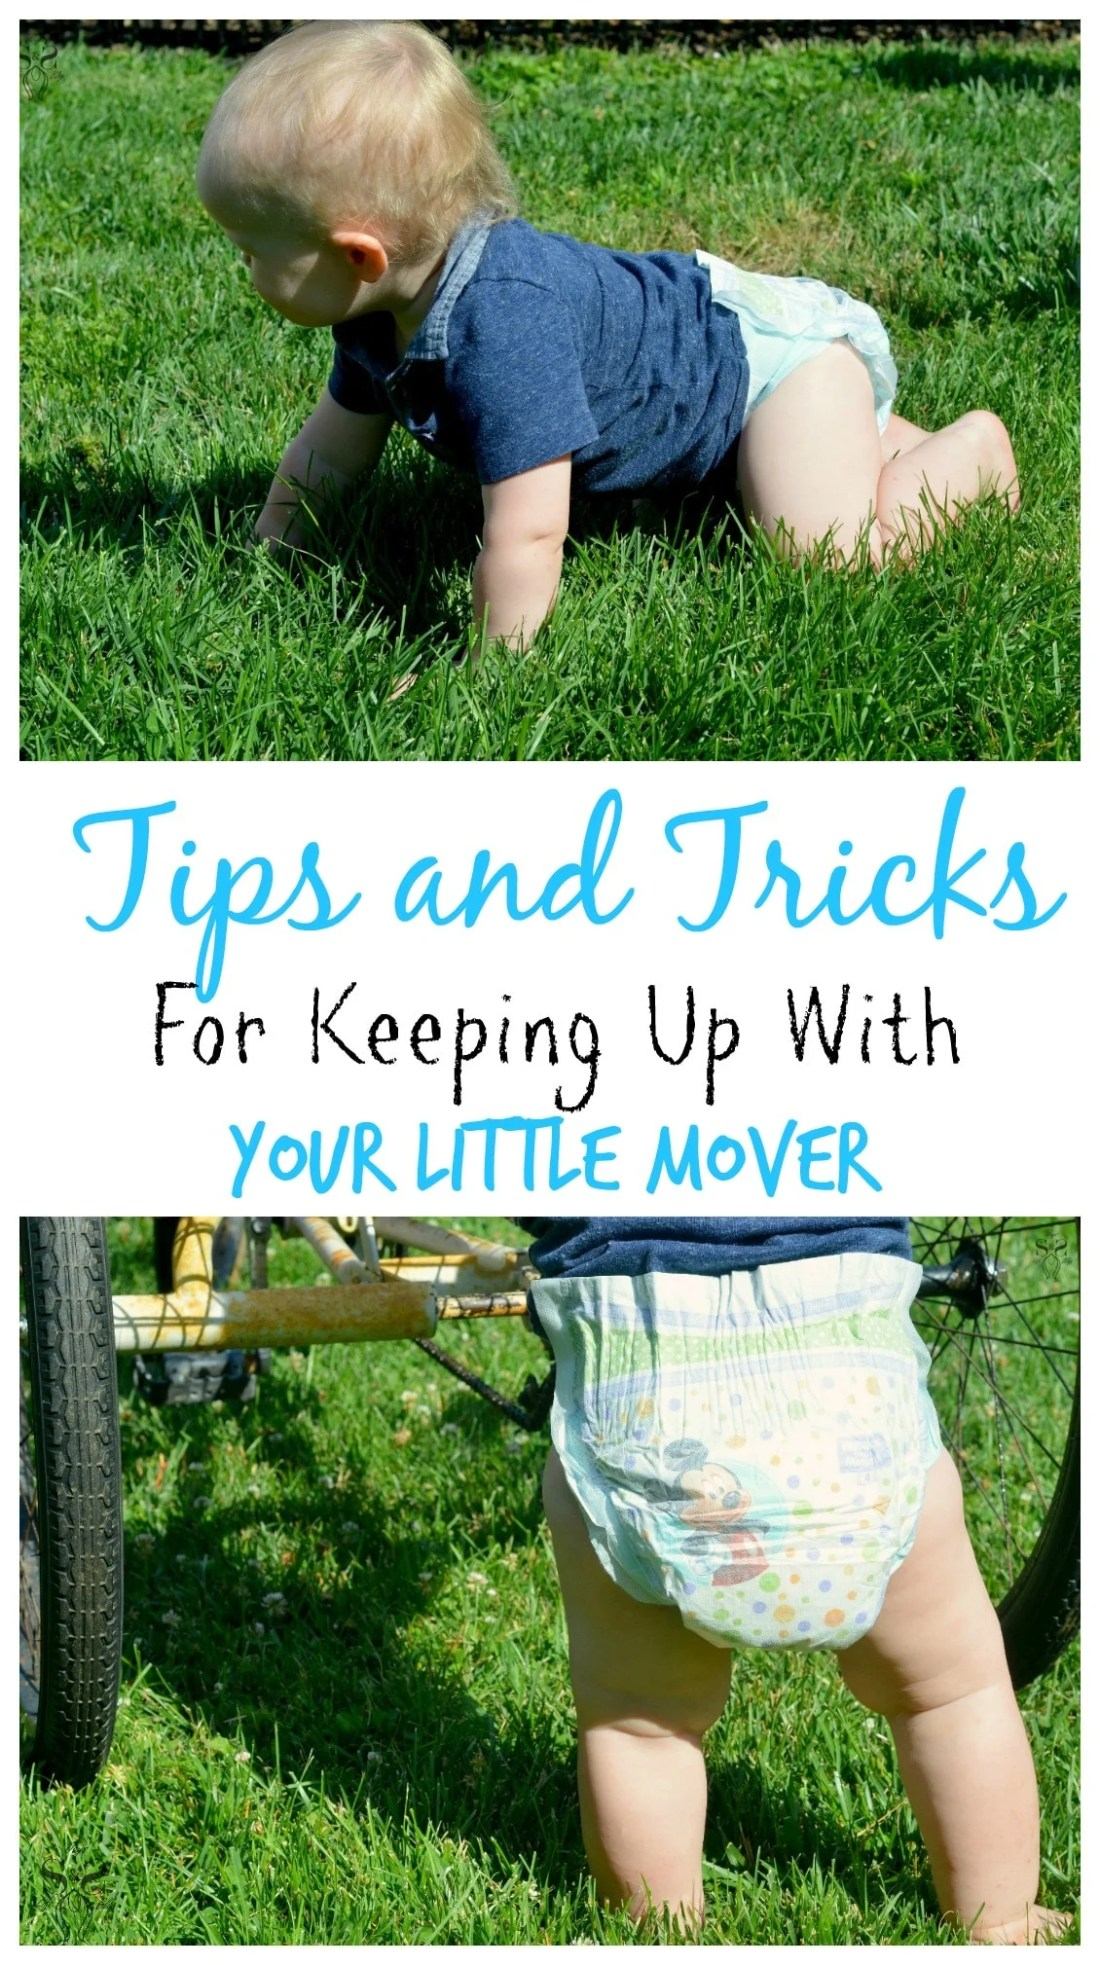 Little Movers Shareable